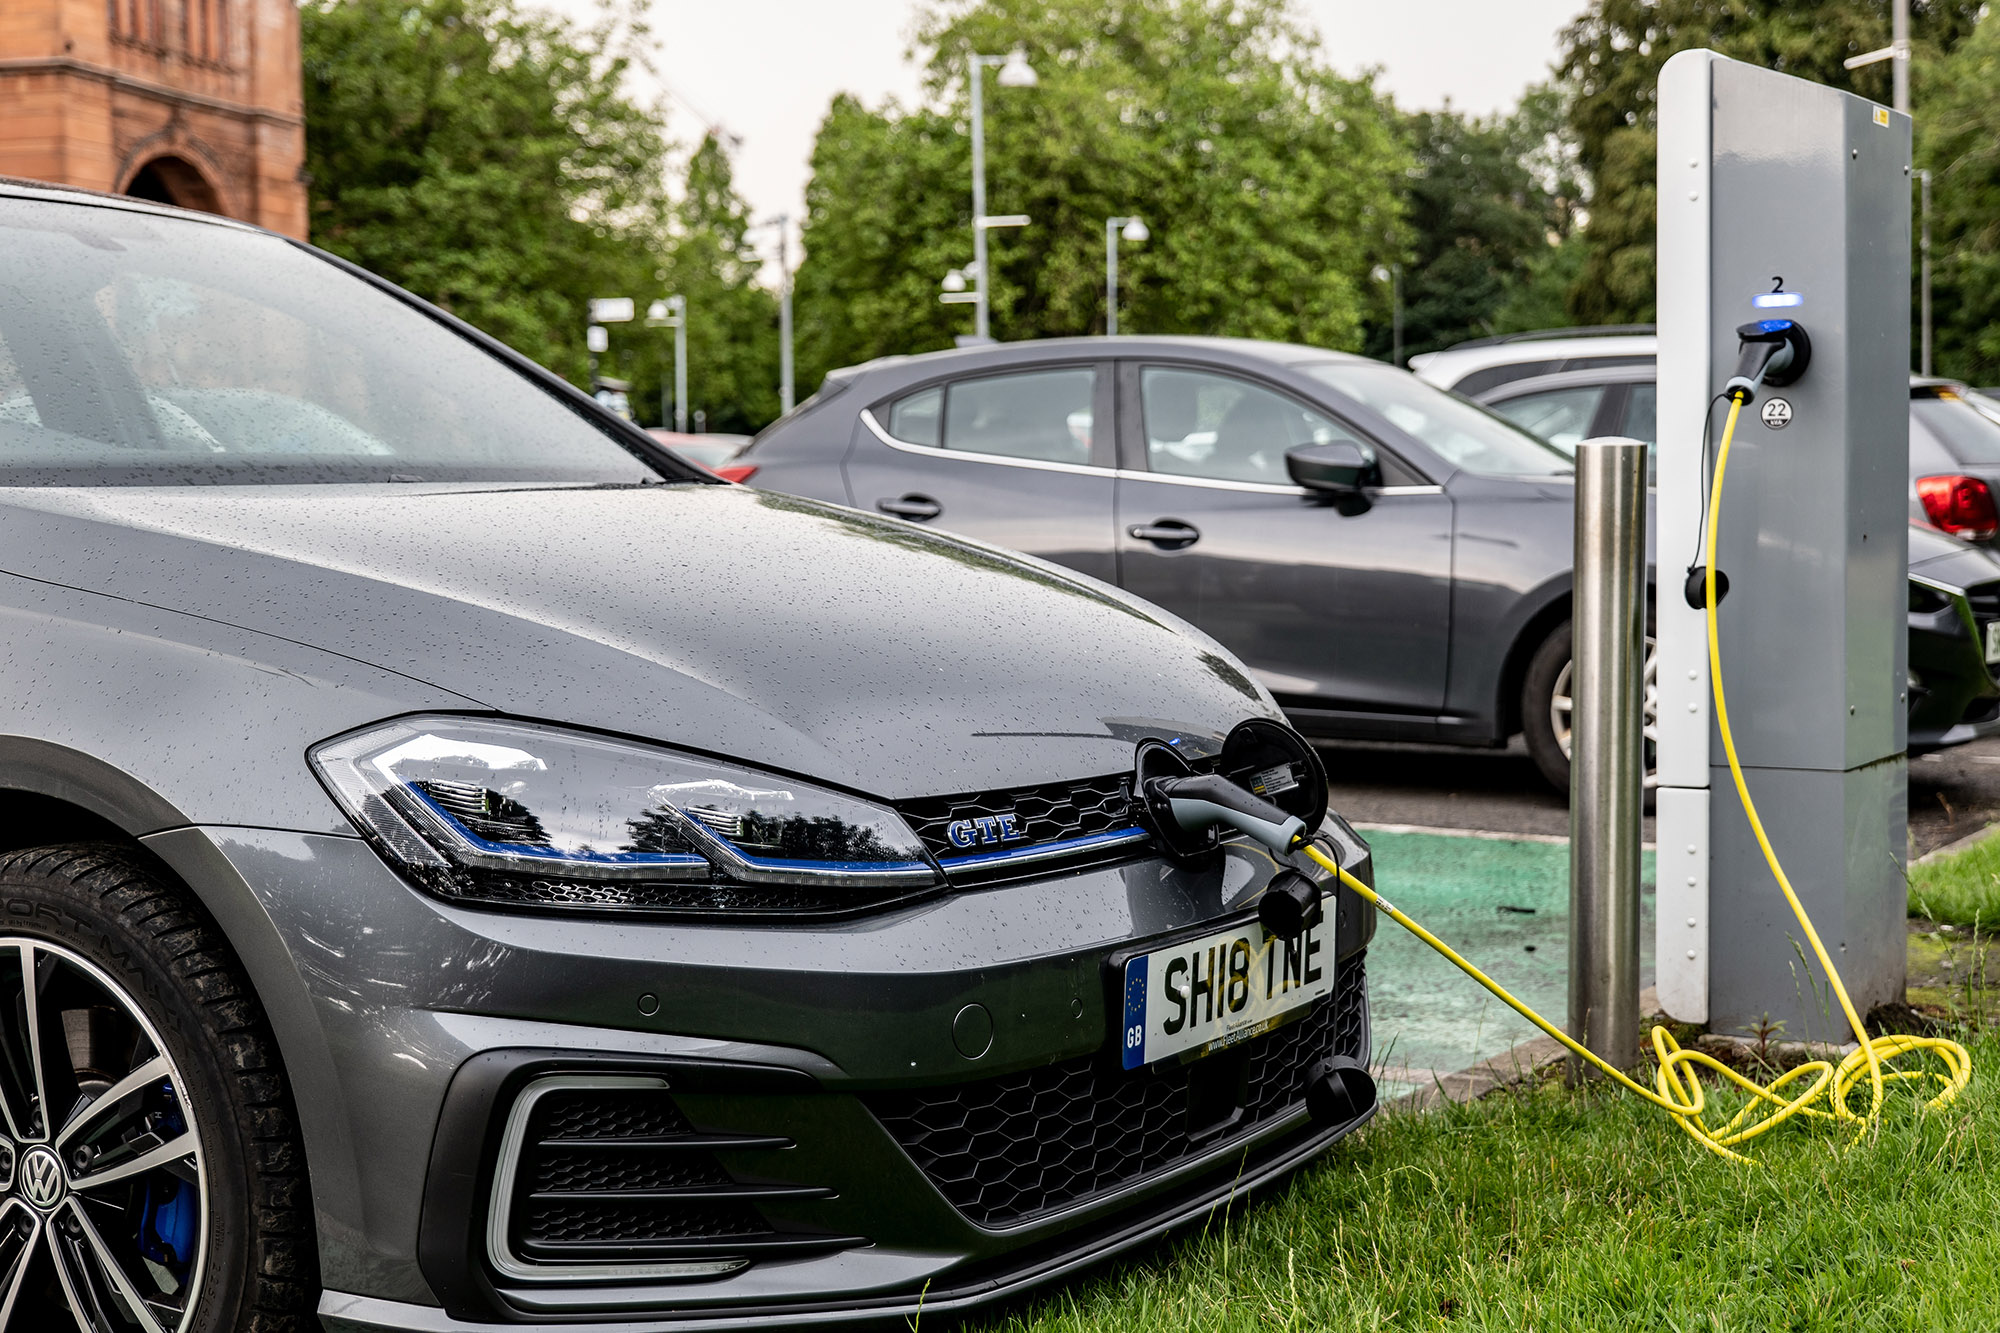 The Government introduce a ban on the sale of petrol and diesel cars from 2030